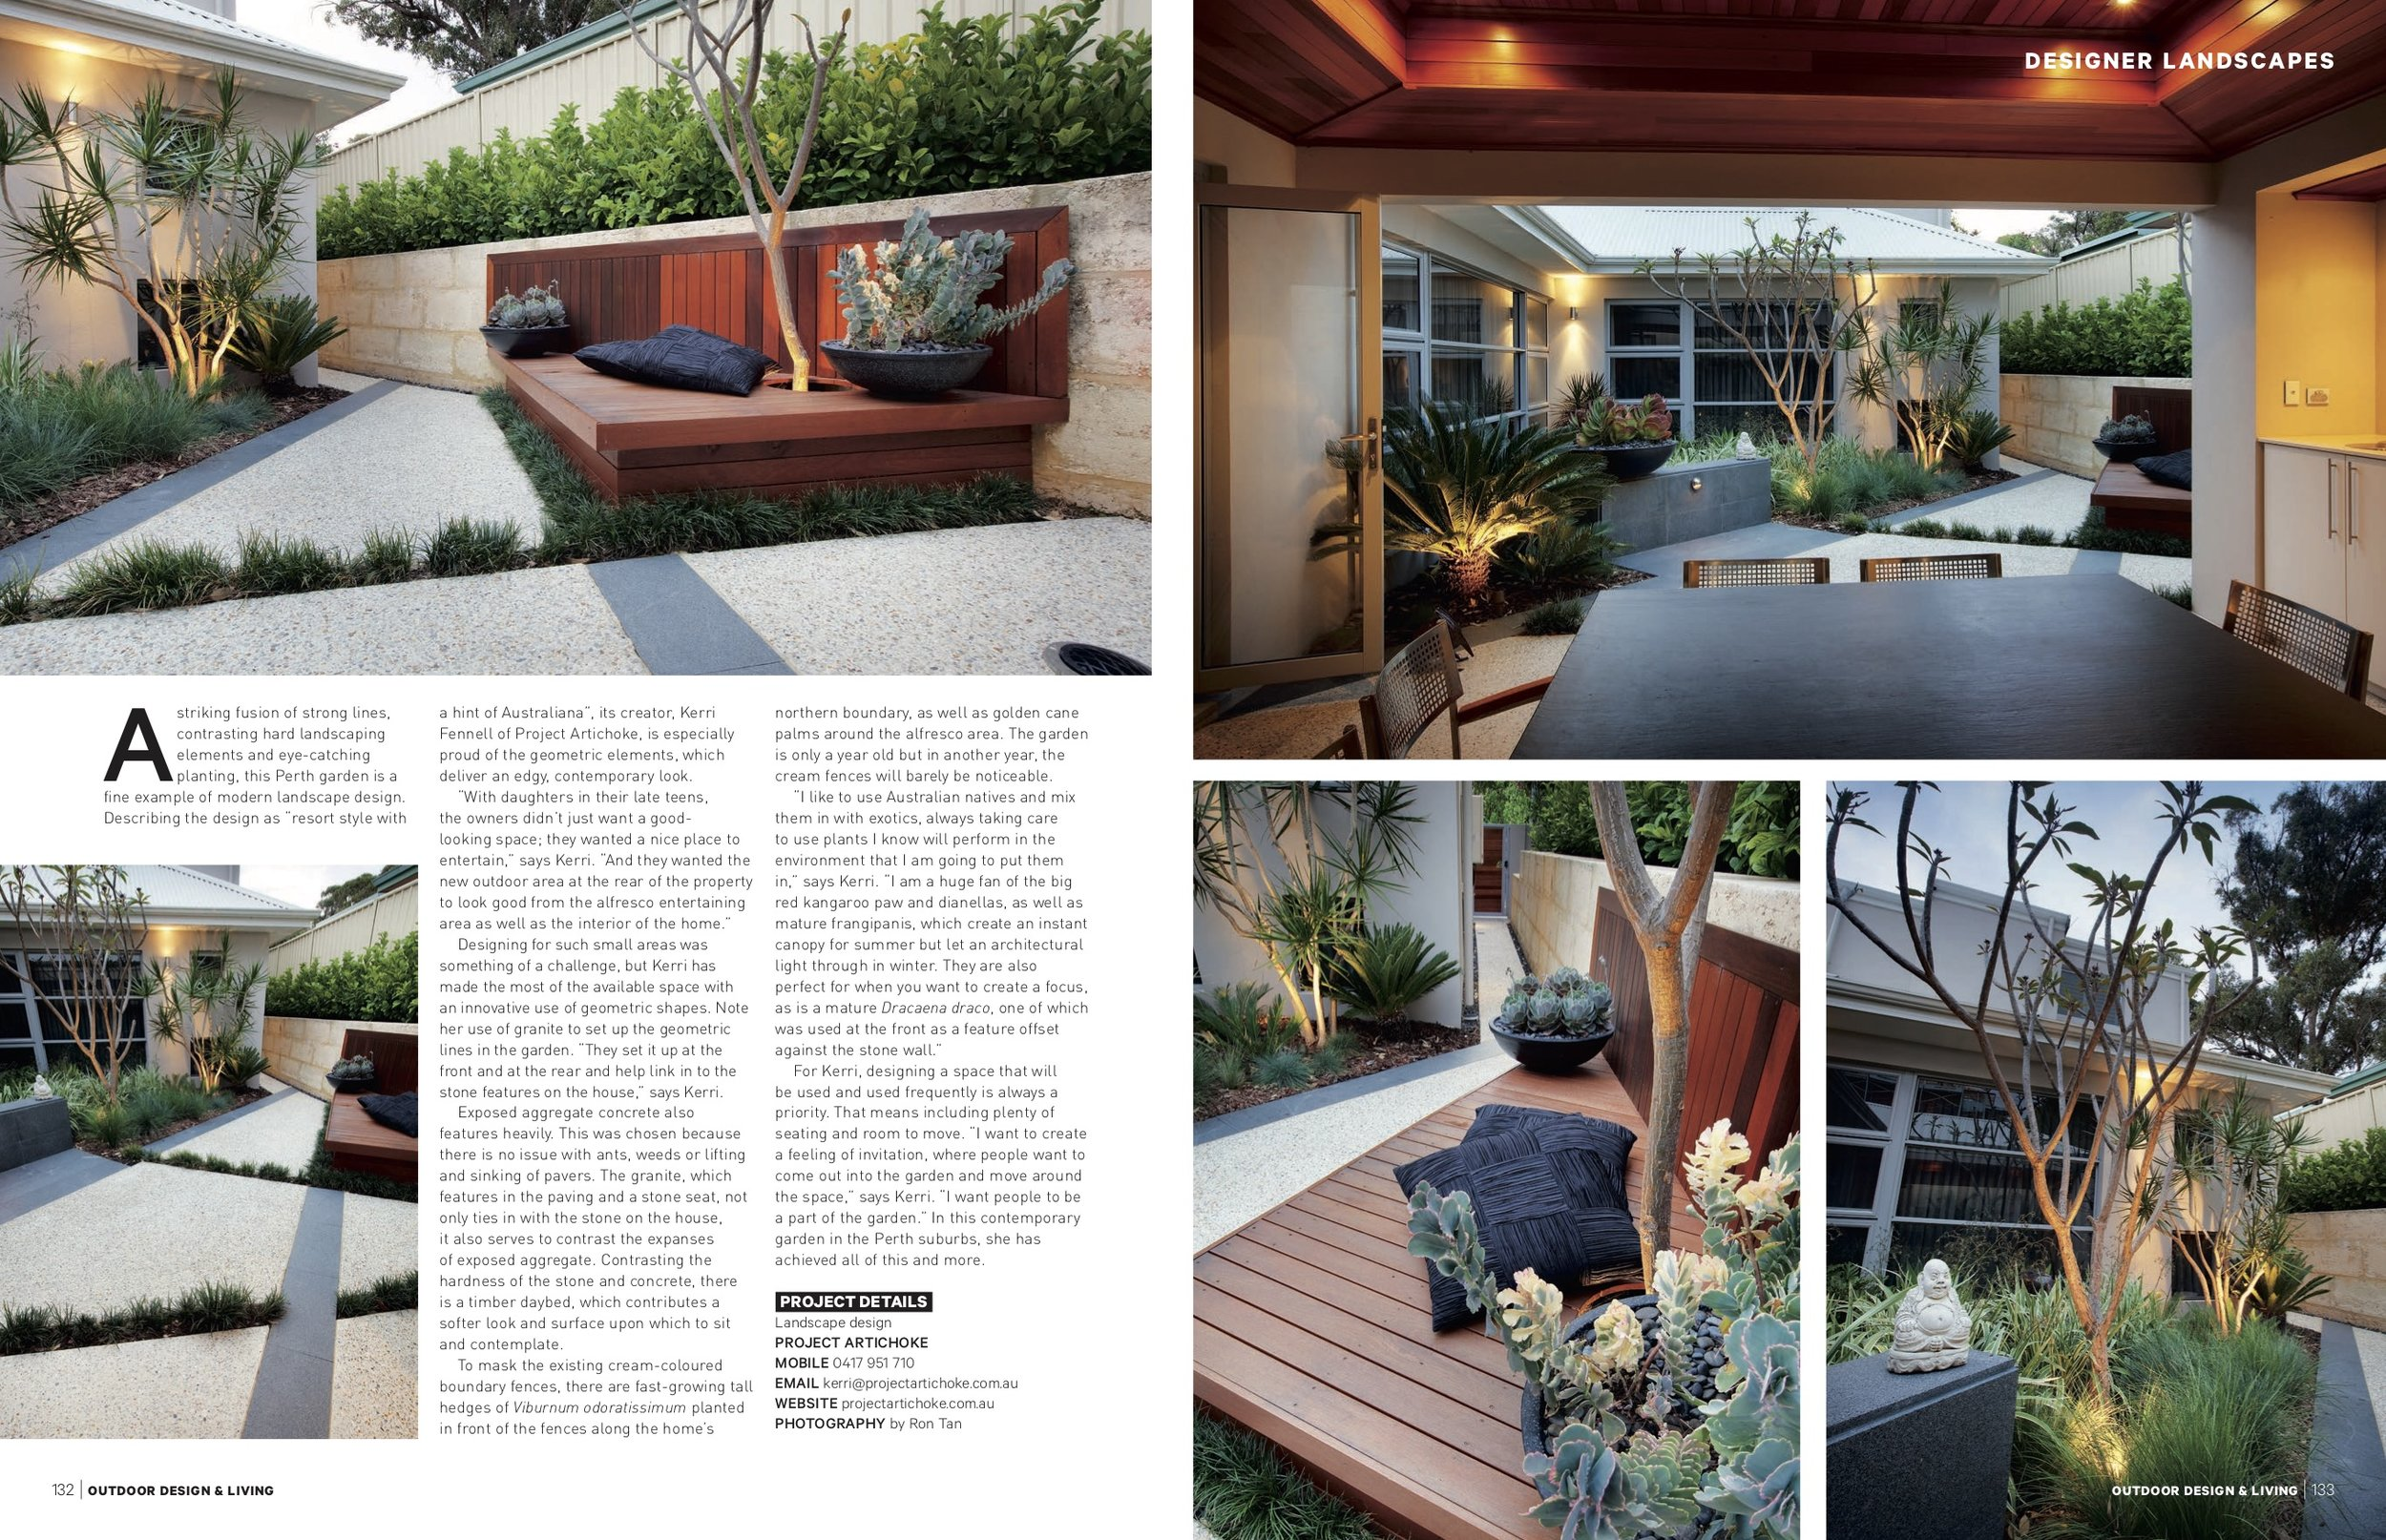 Sorrento Project from Outdoor Design and Living magazine